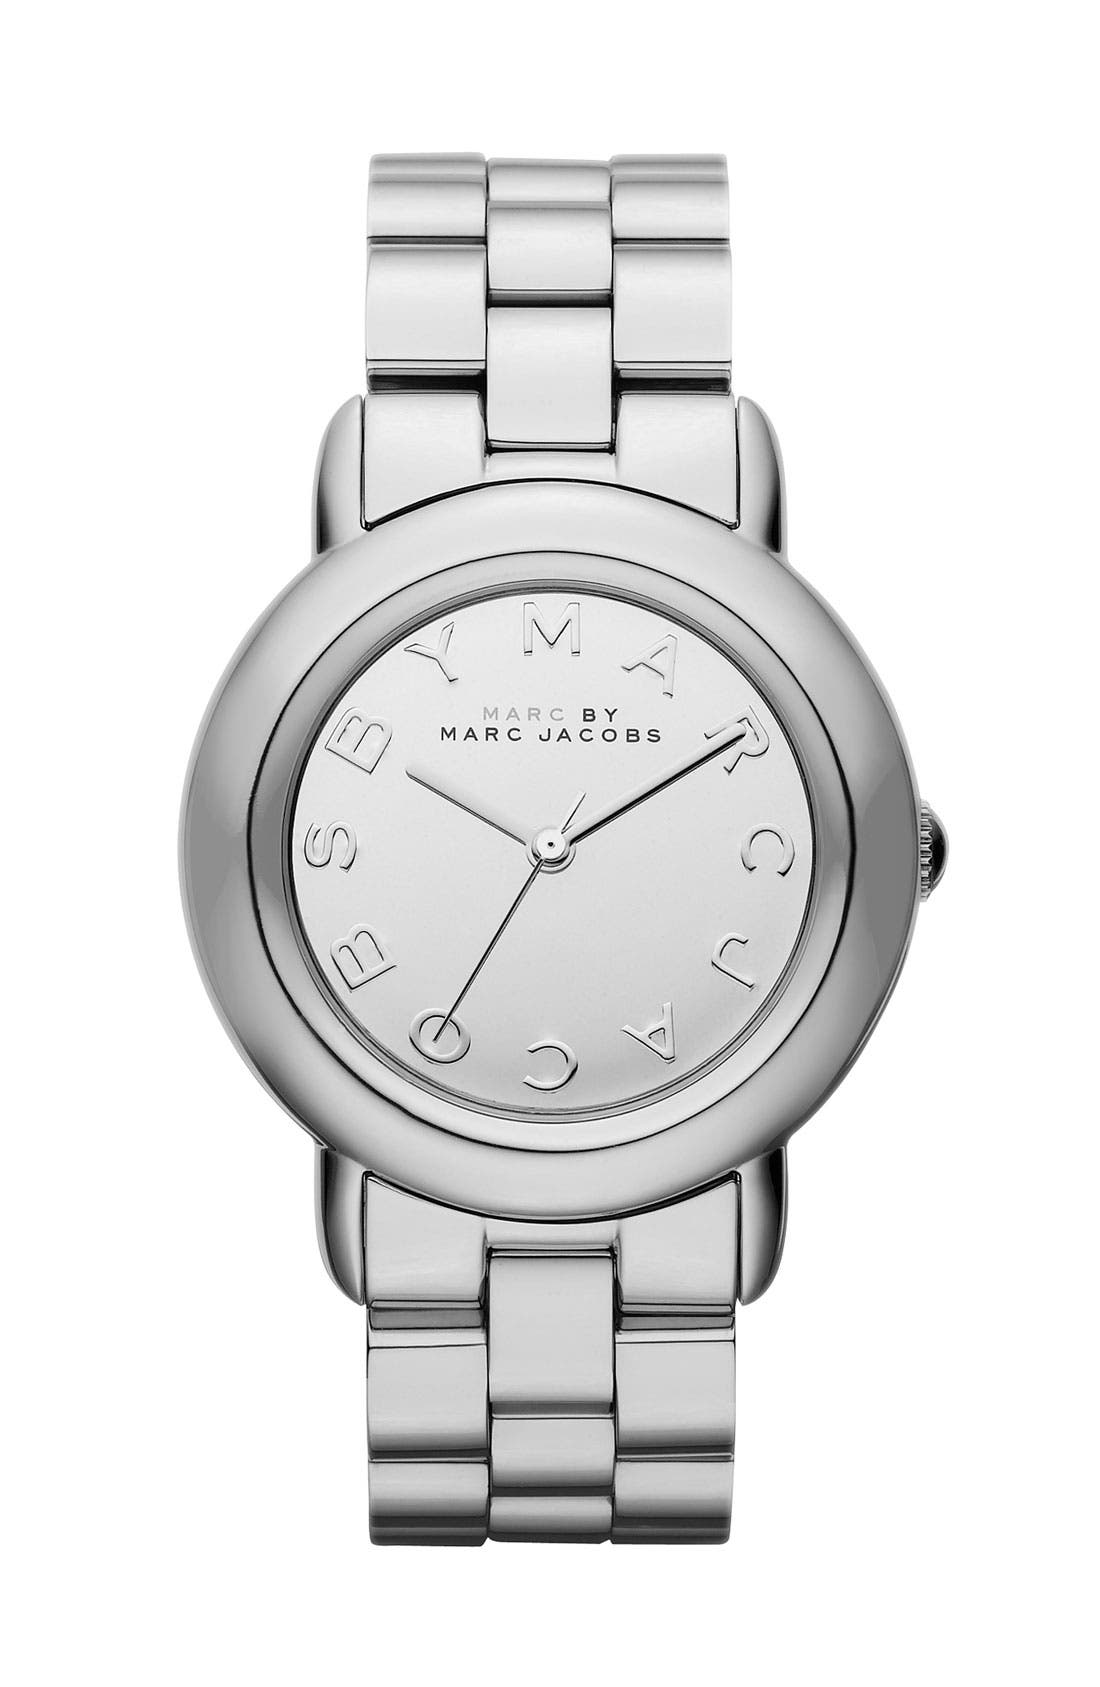 MARC BY MARC JACOBS 'Marci' Mirror Dial Watch,                             Main thumbnail 1, color,                             040